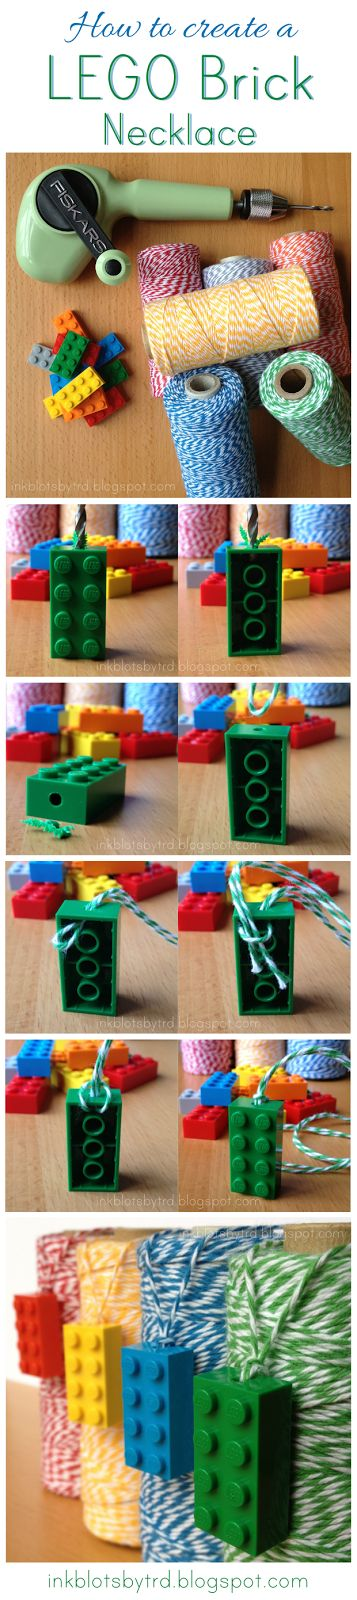 LEGO-Brick-Twine-Necklace-Tutorial.png 357×1,600 pixels